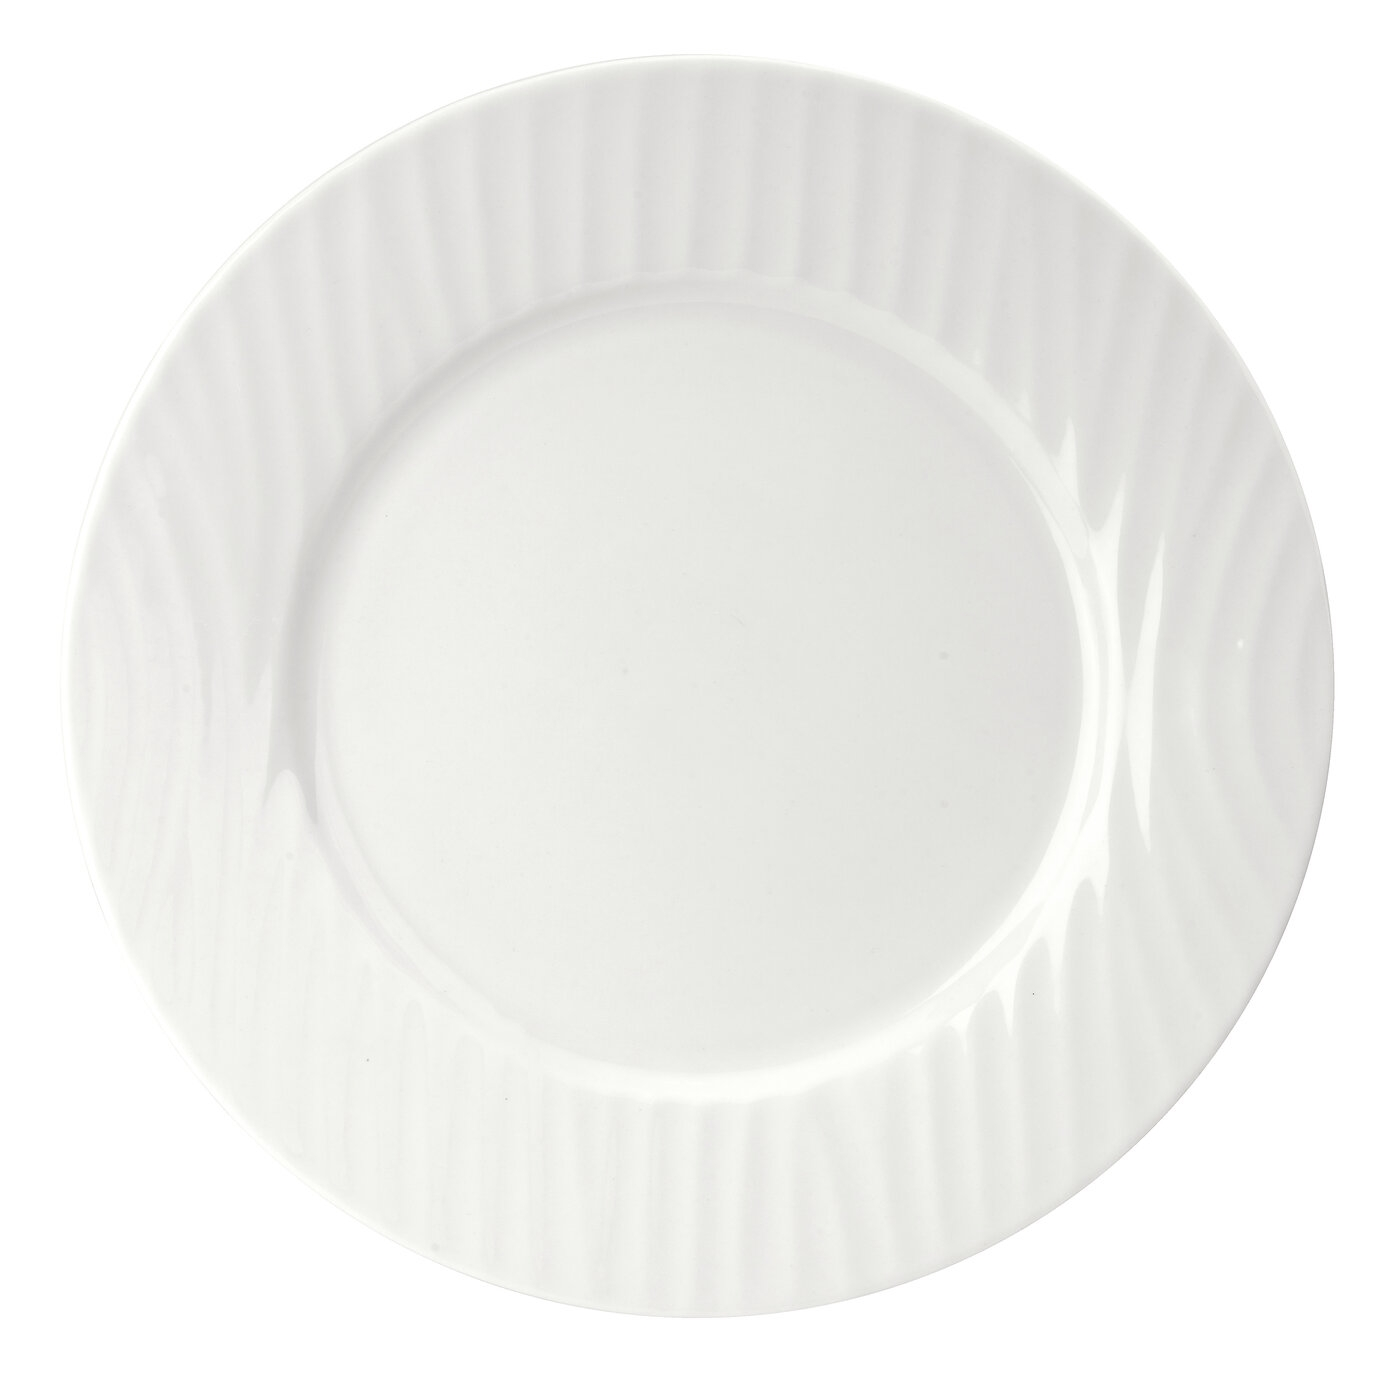 Sophie Conran for Portmeirion White Oak 11 Inch Rimmed Dinner Plate image number 0